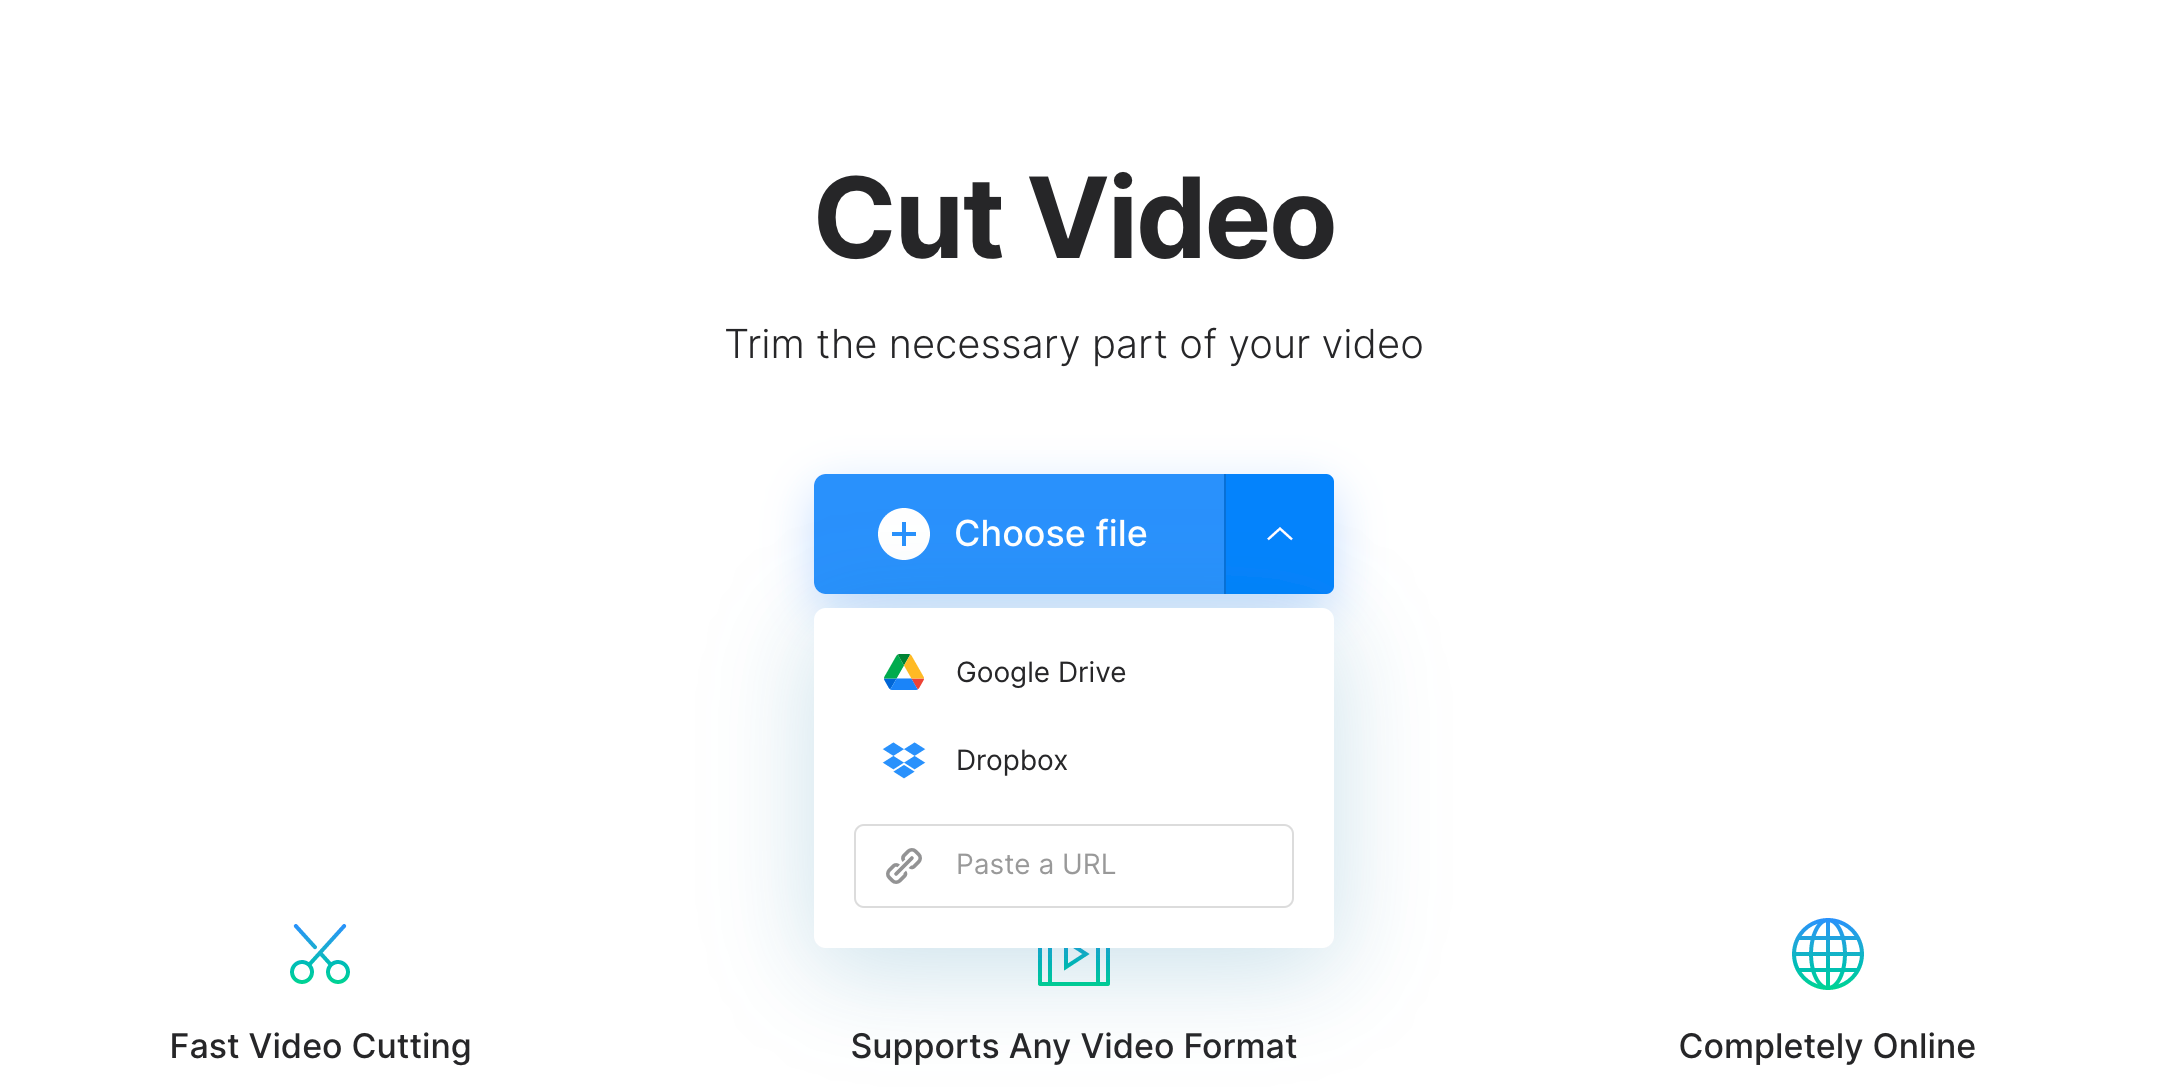 Upload video to take a clip from it